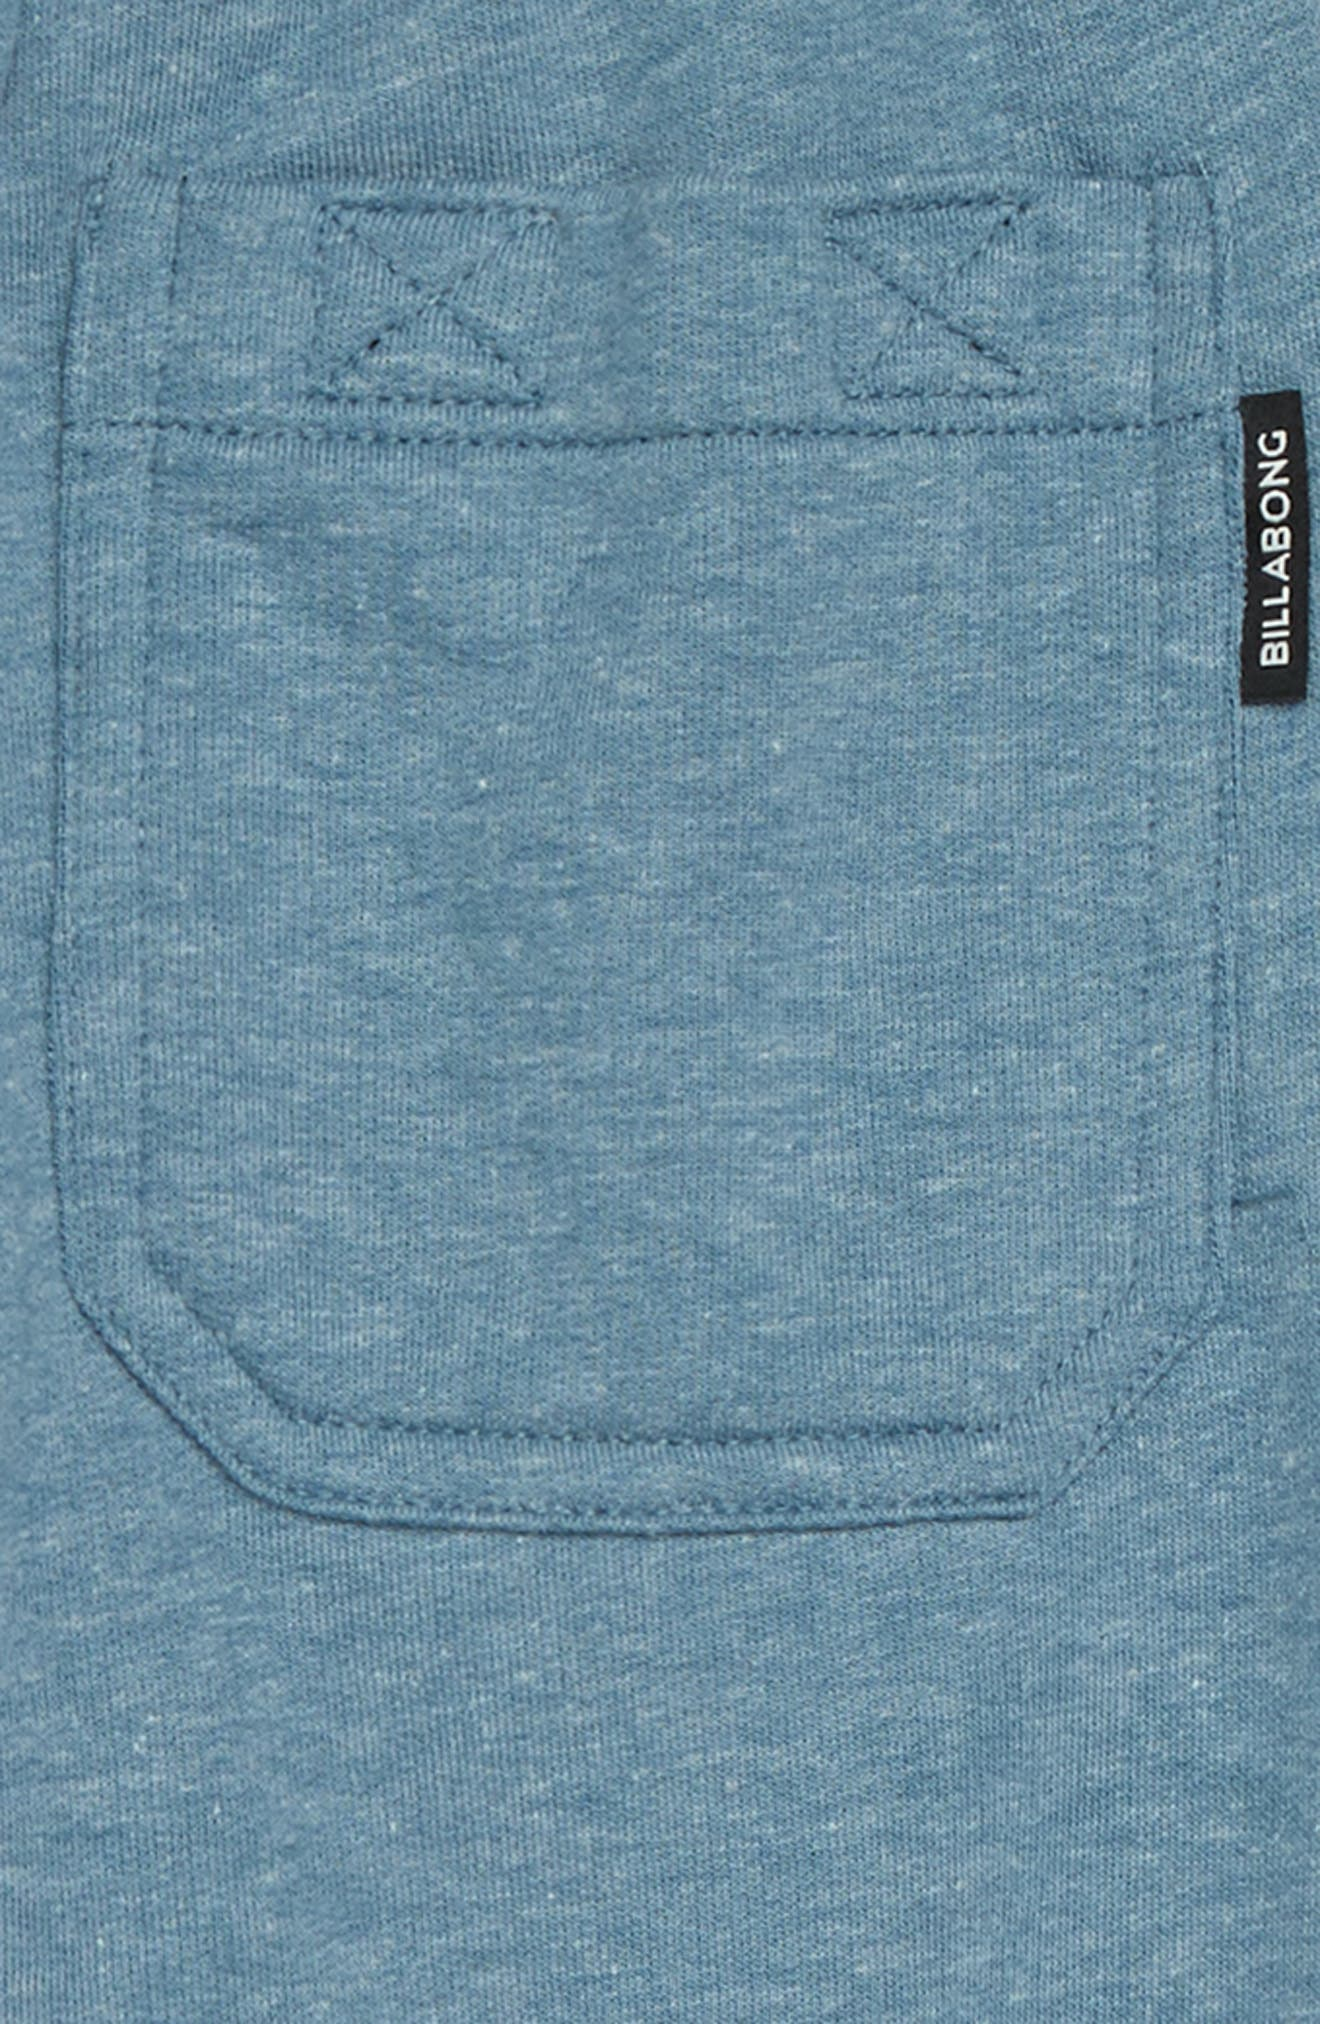 All Day Sweatpants,                             Alternate thumbnail 3, color,                             WASHED BLUE